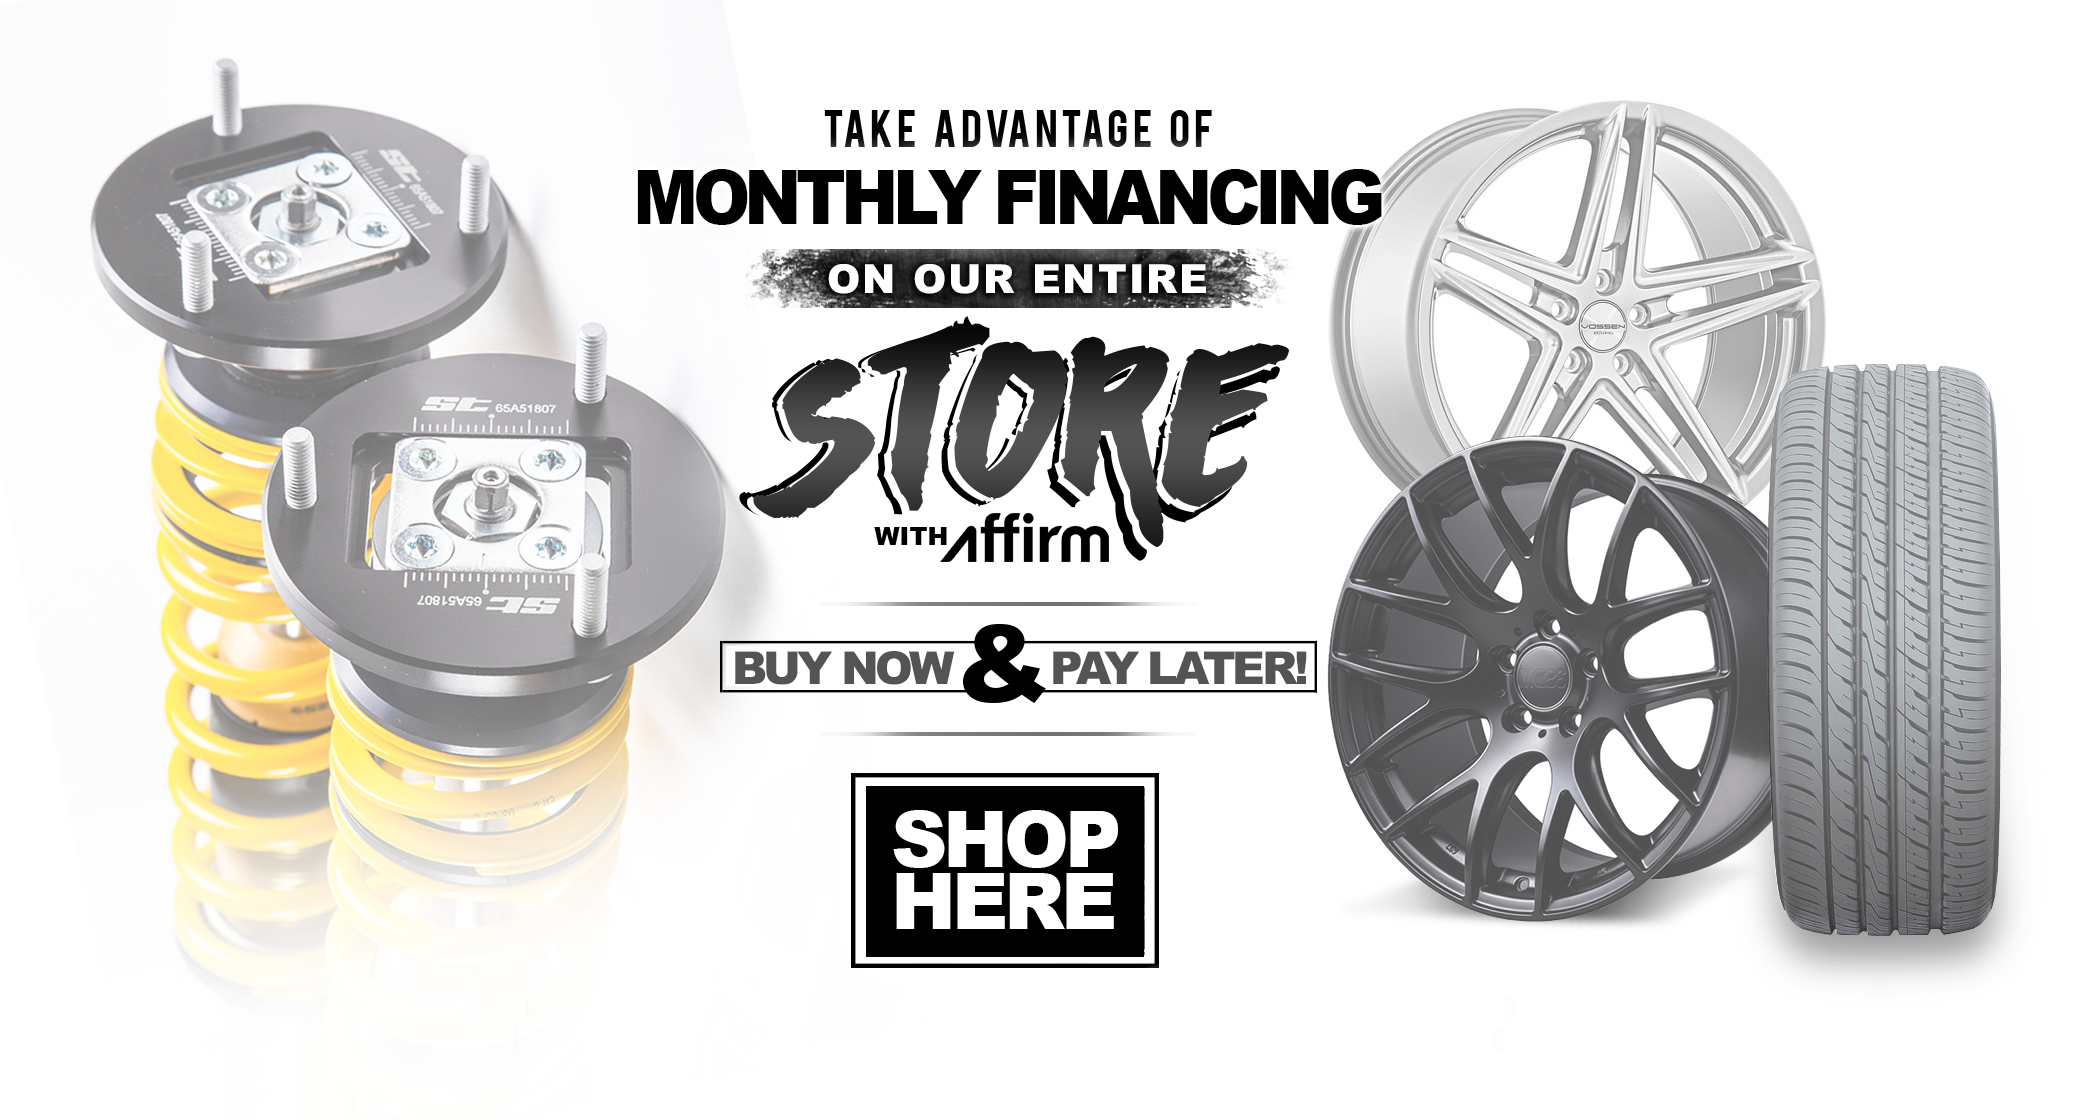 Take advantage of financing as low as 0% APR for those who qualify, ends 7/23